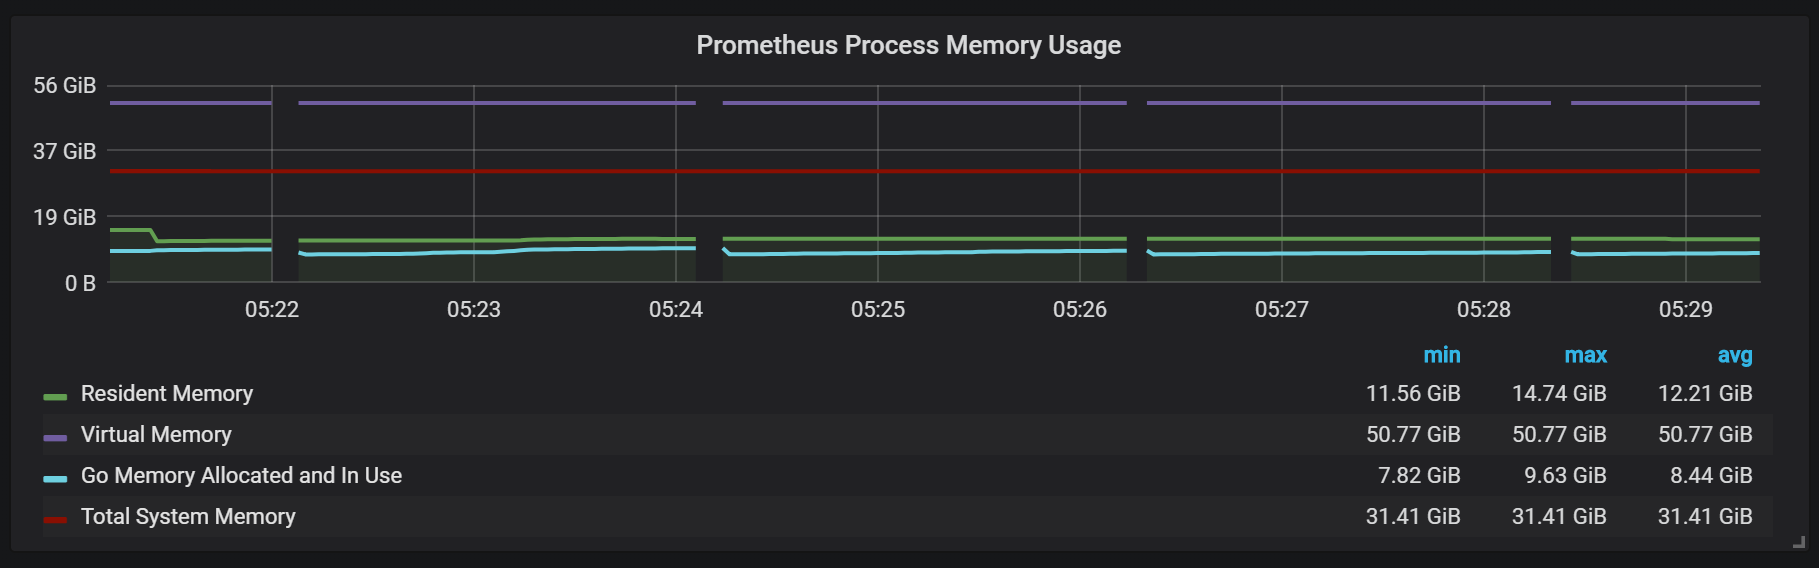 Prometheus 2 process memory usage